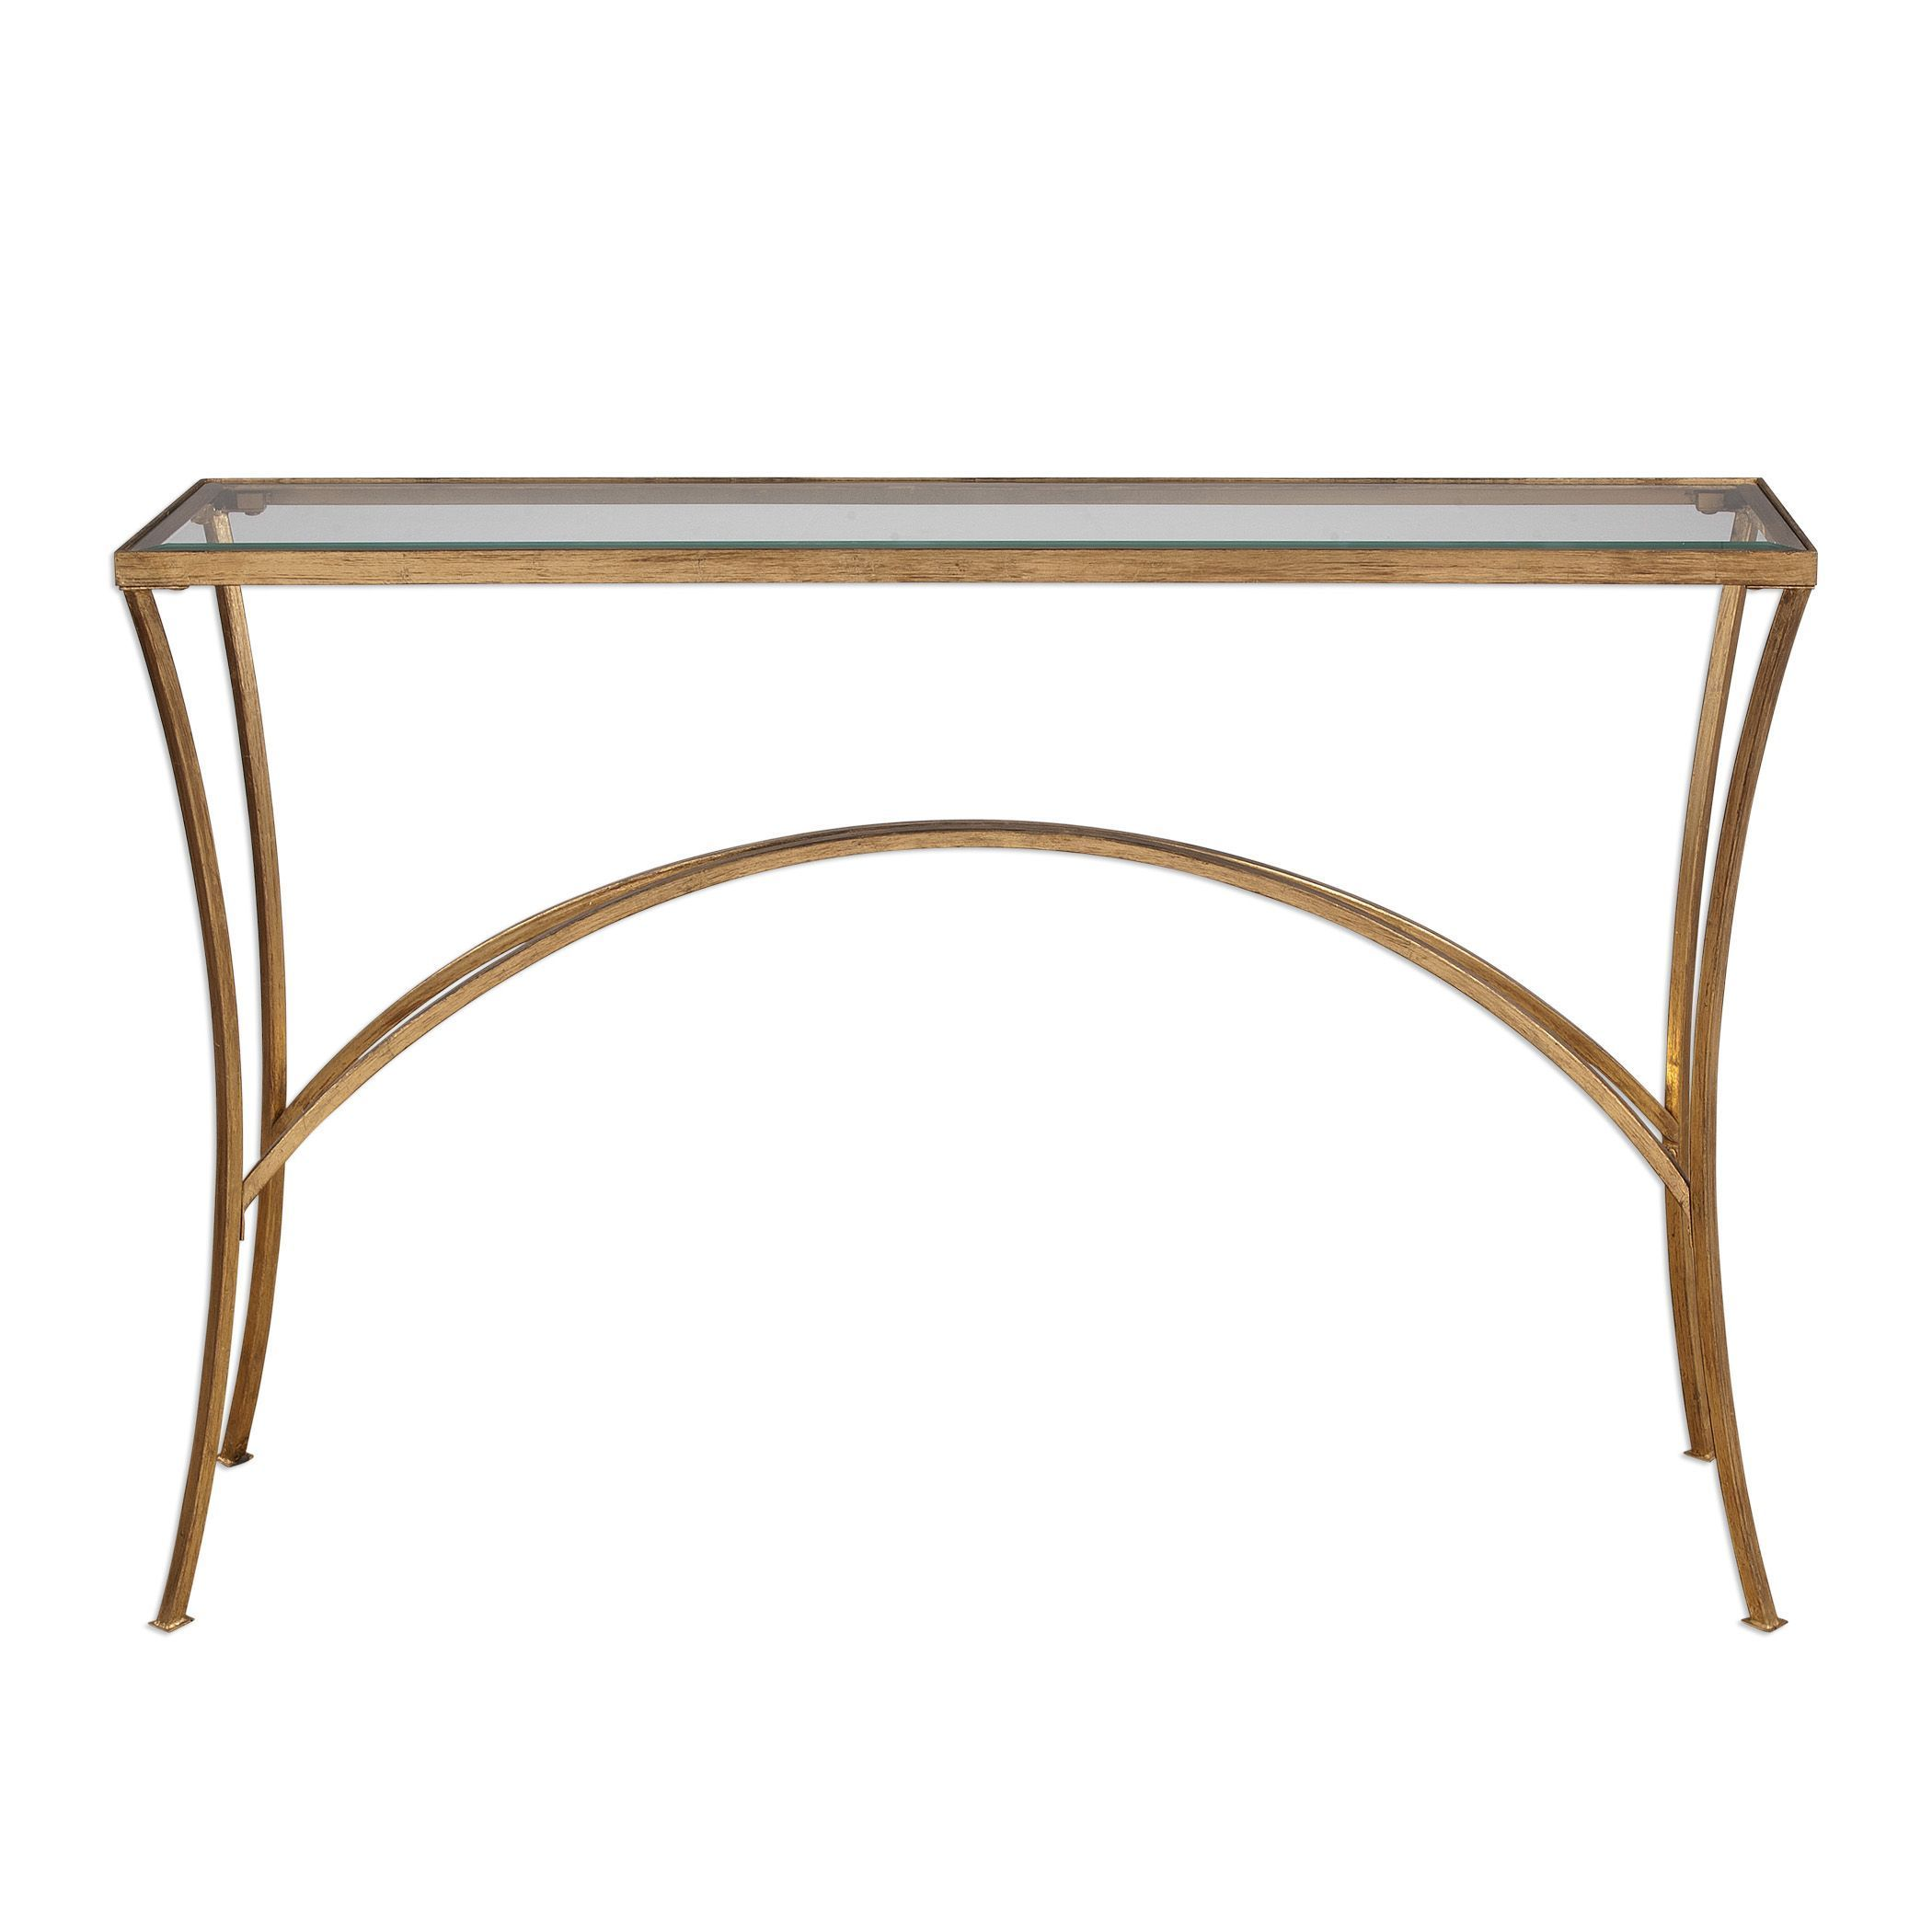 Uttermost Alayna Gold Console Table   Free Shipping Today   Overstock    20352653